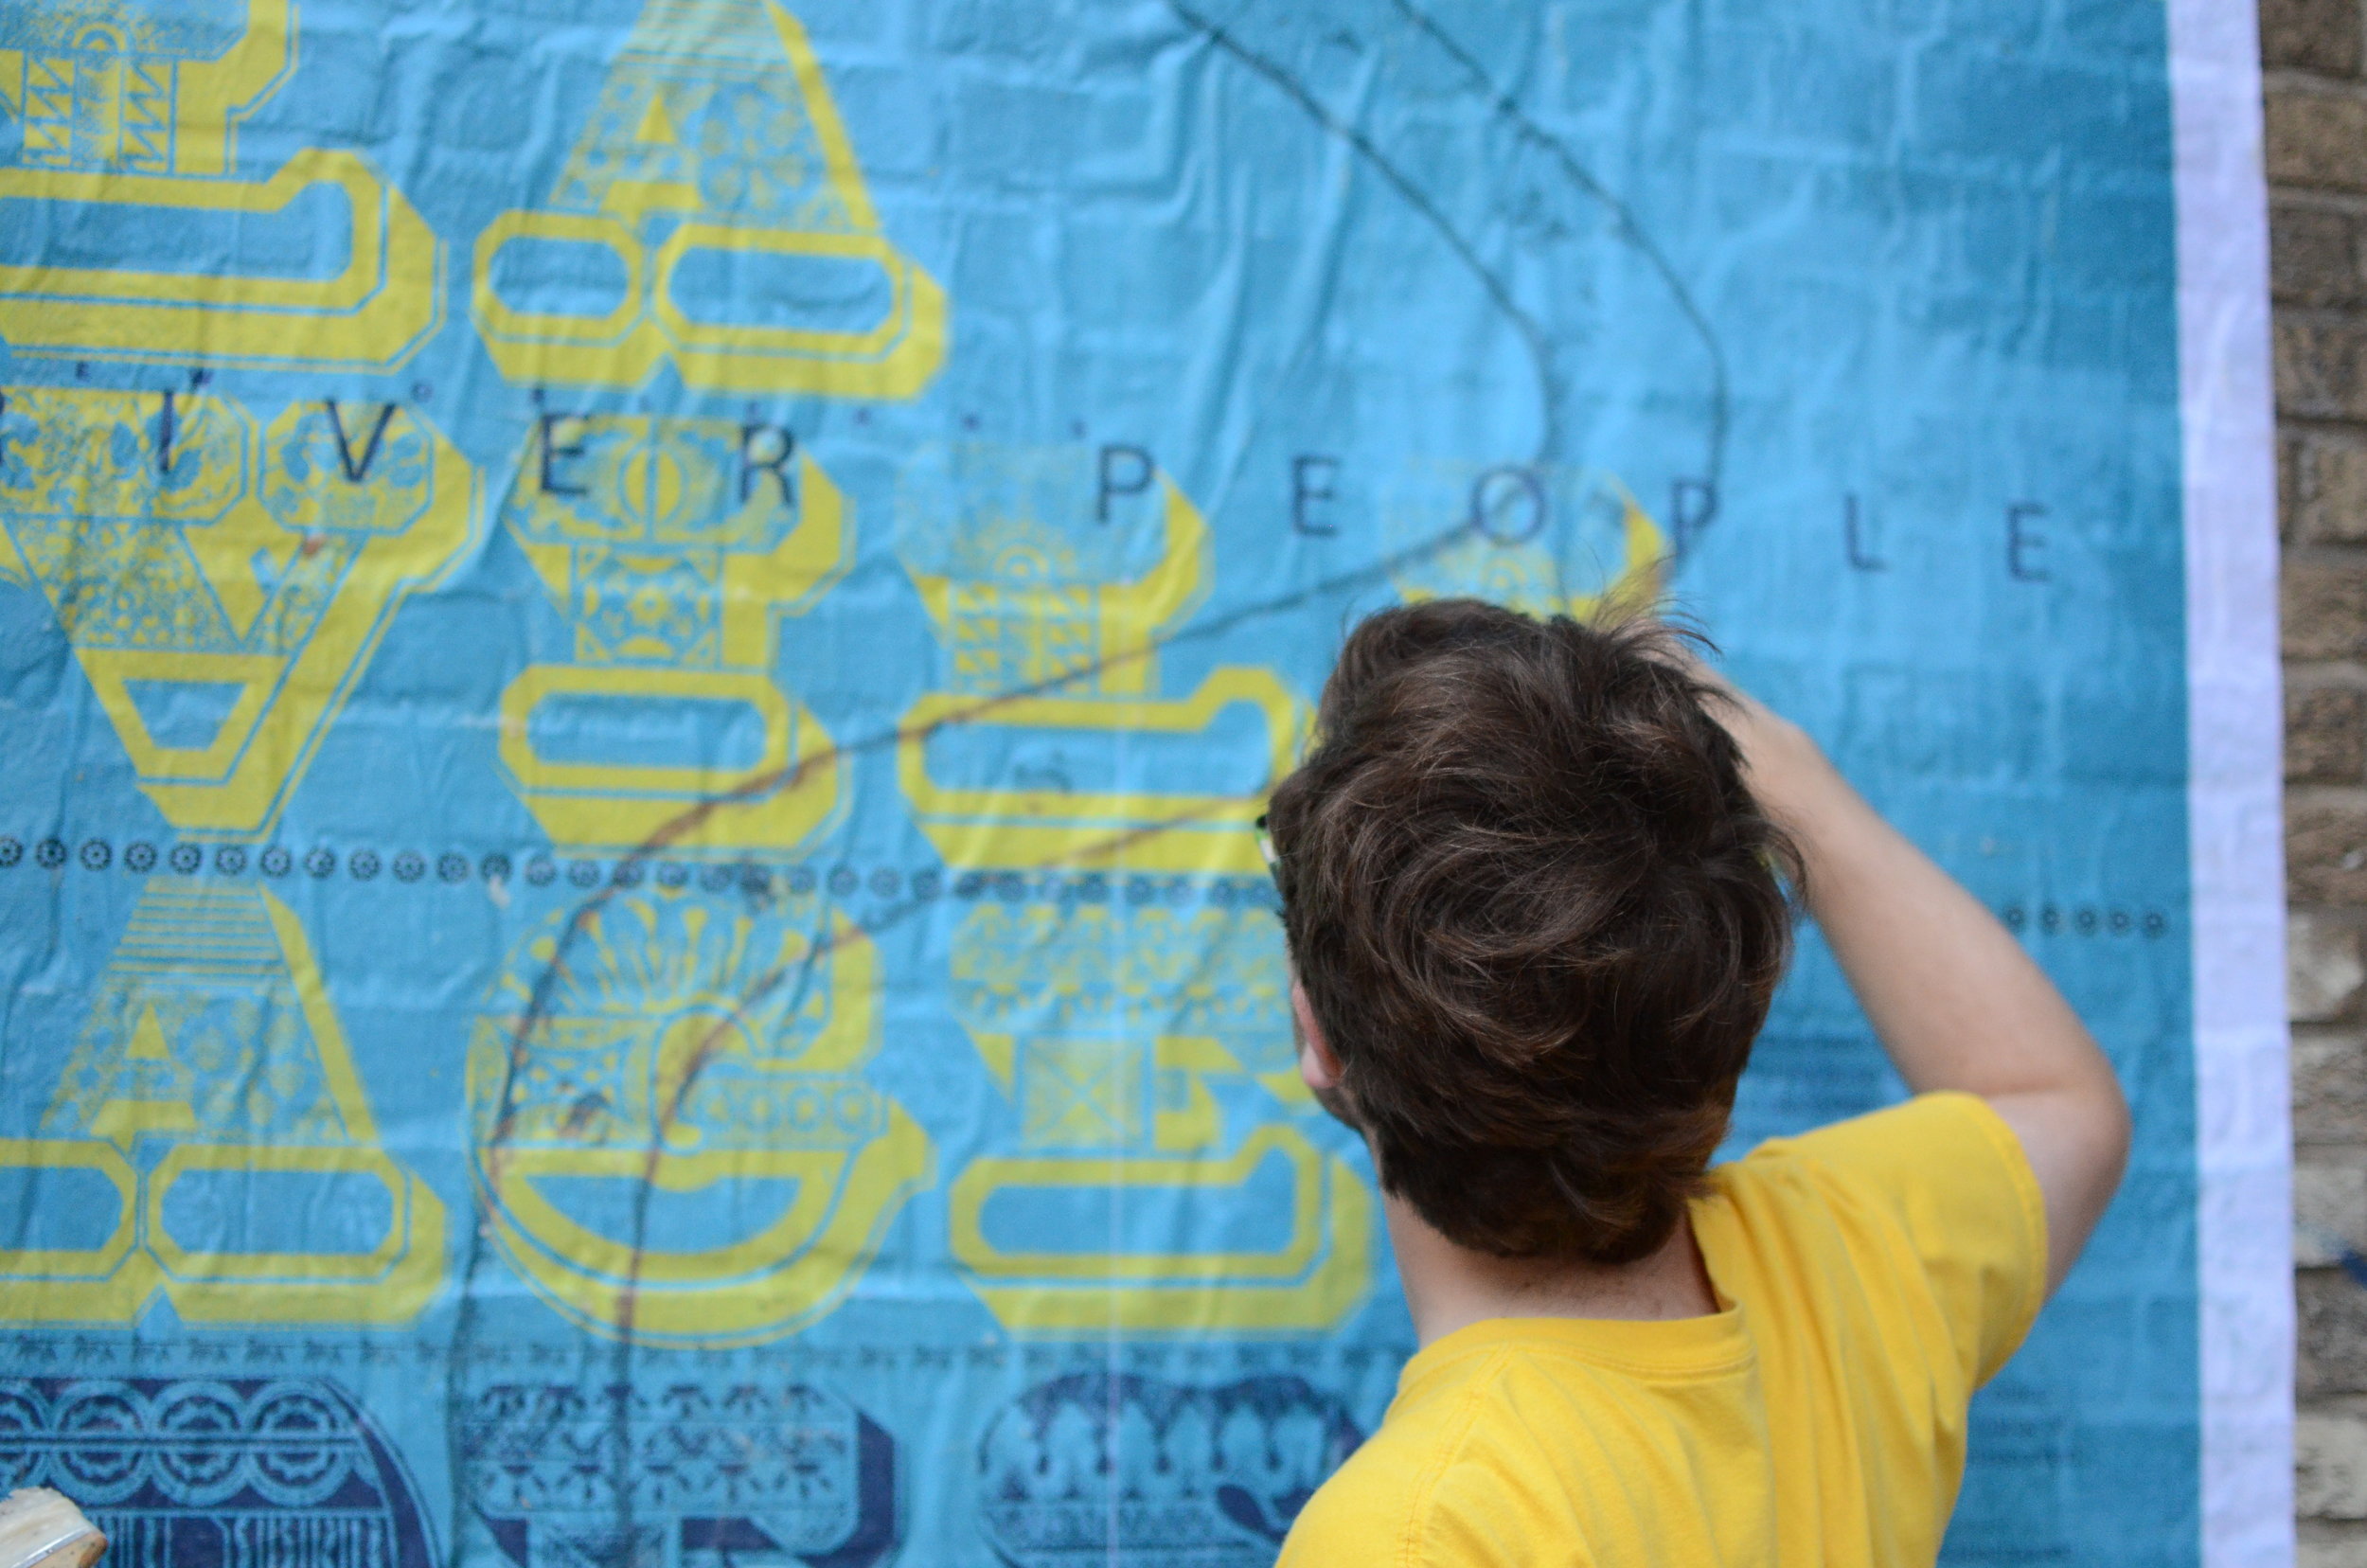 A volunteer in the process of putting up a poster commemorating La Villa De Chapitoulas. Daniela Marx created the artwork, and Shannon Lee Dawdy wrote the narrative for the poster. (Photo Credit: Chris Daemmrich)